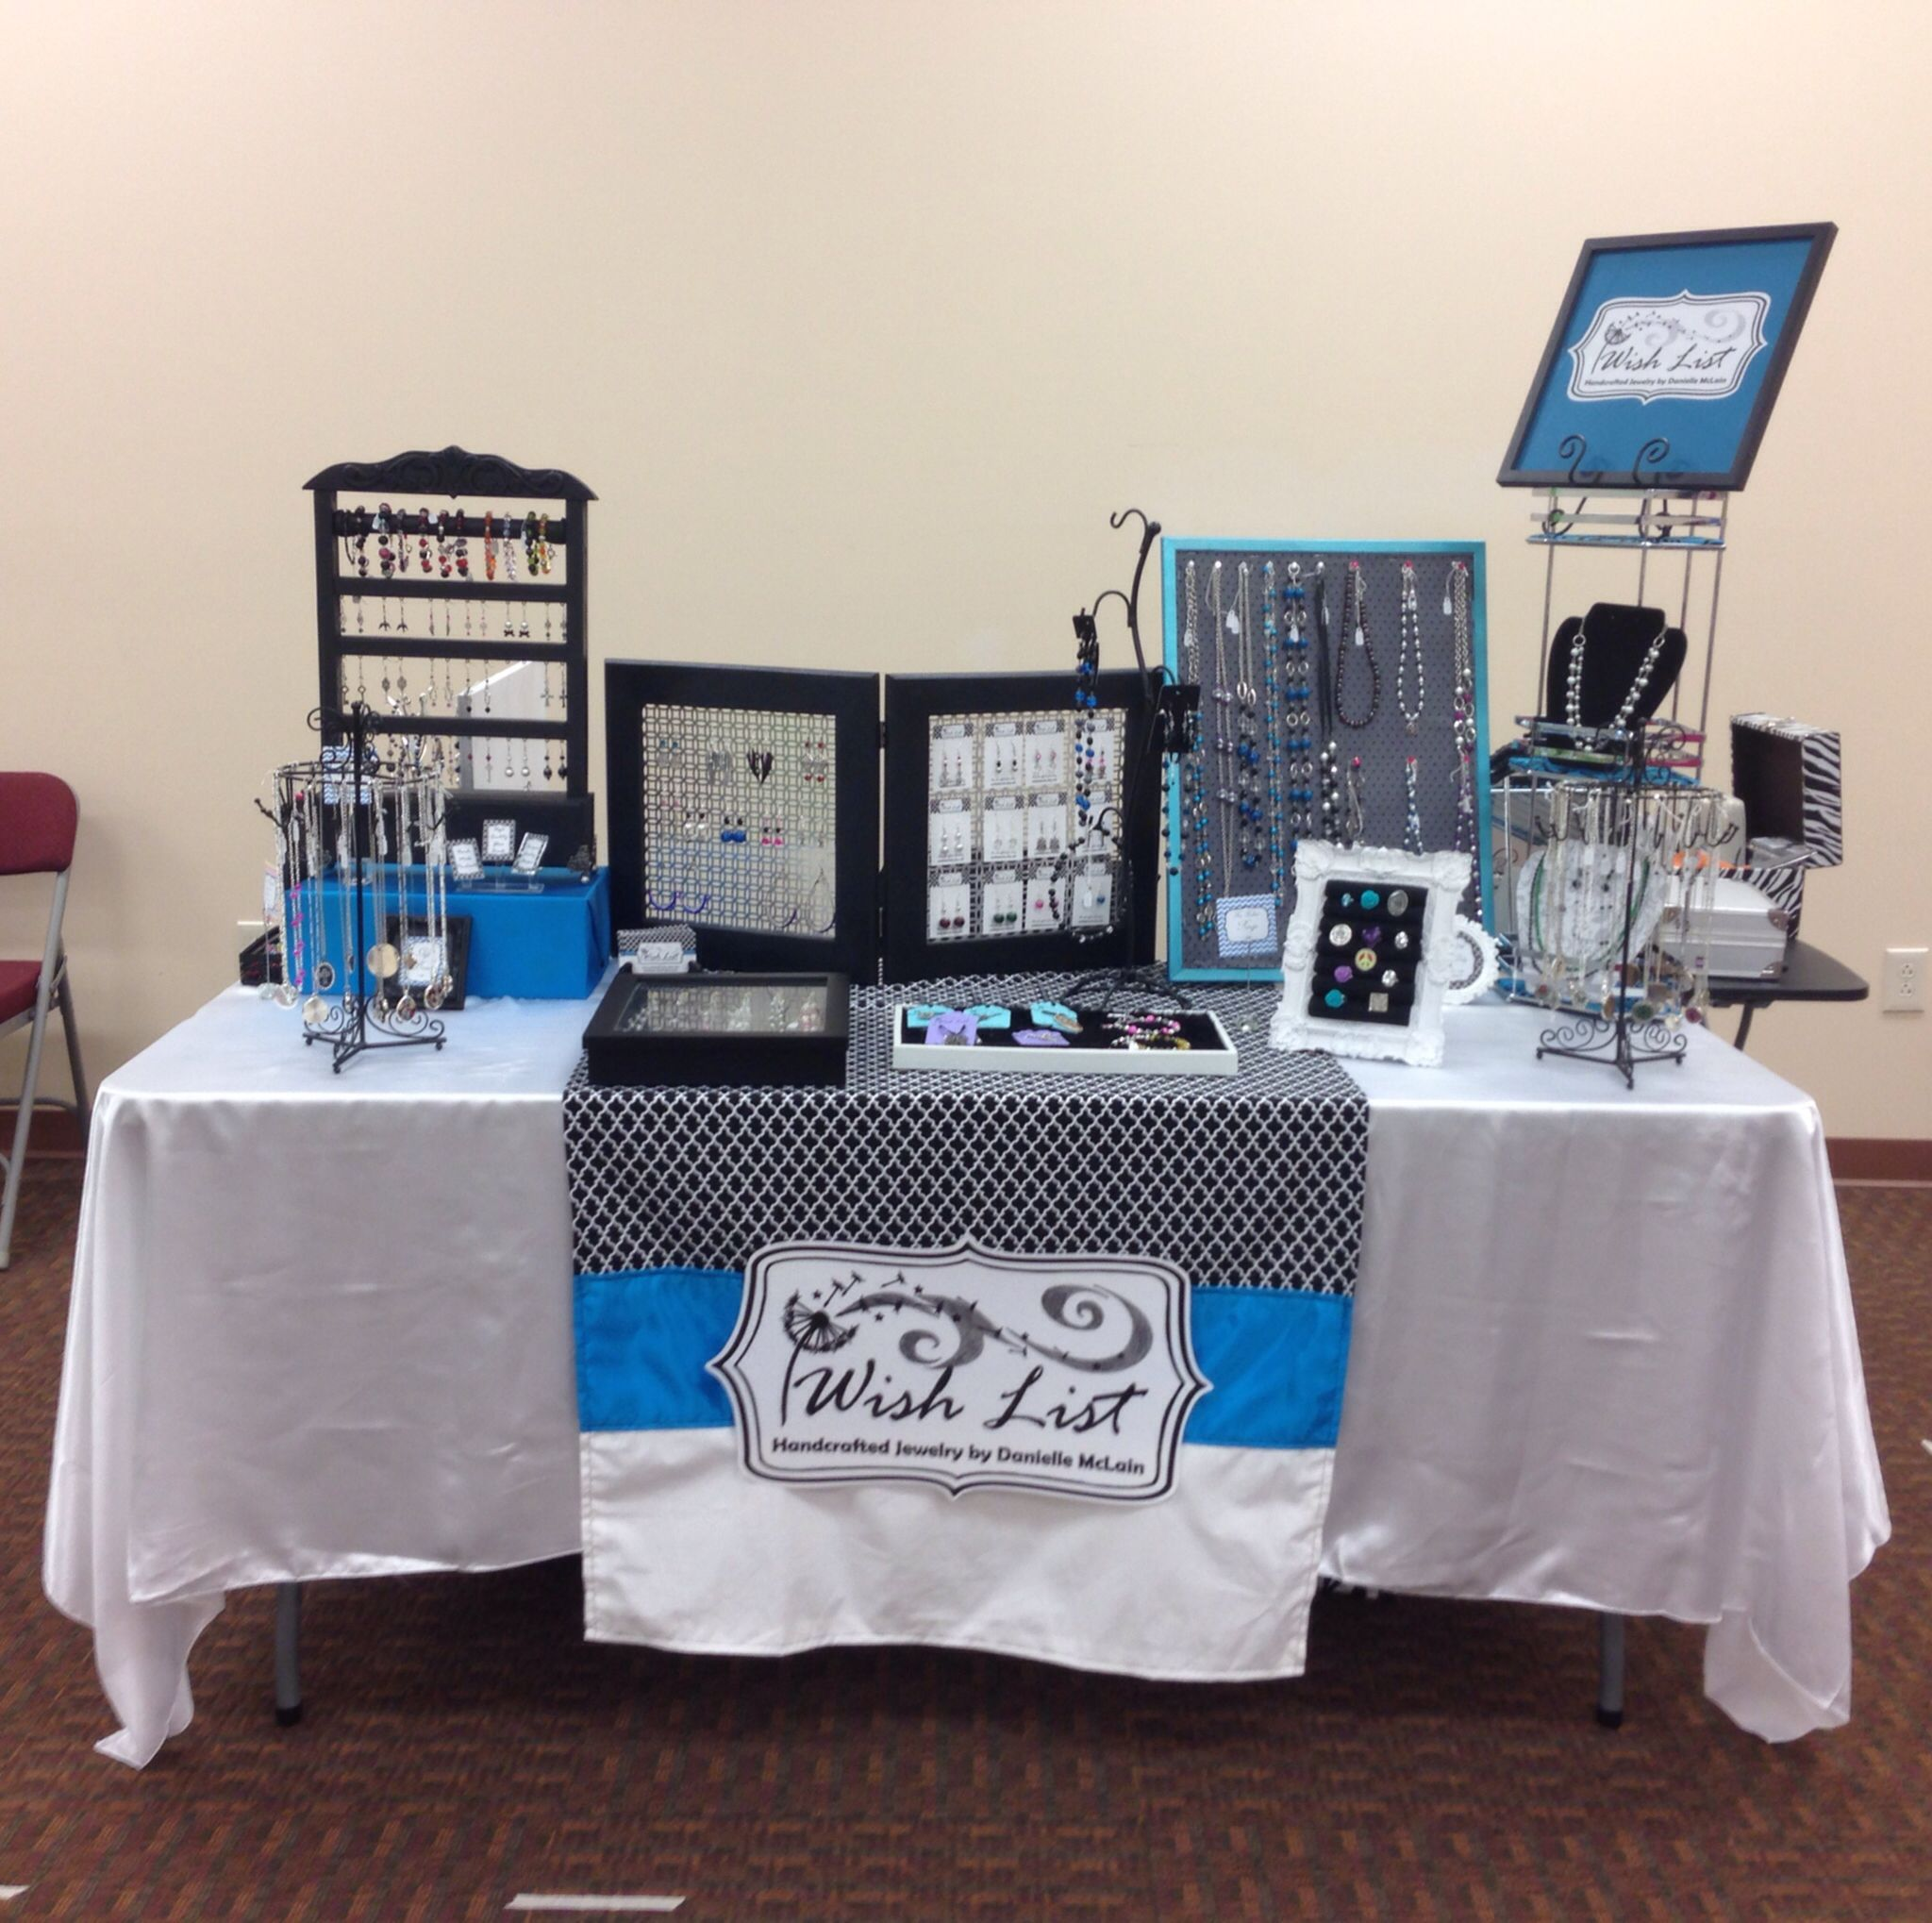 My handmade jewelry booth display craft show table for Table top display ideas